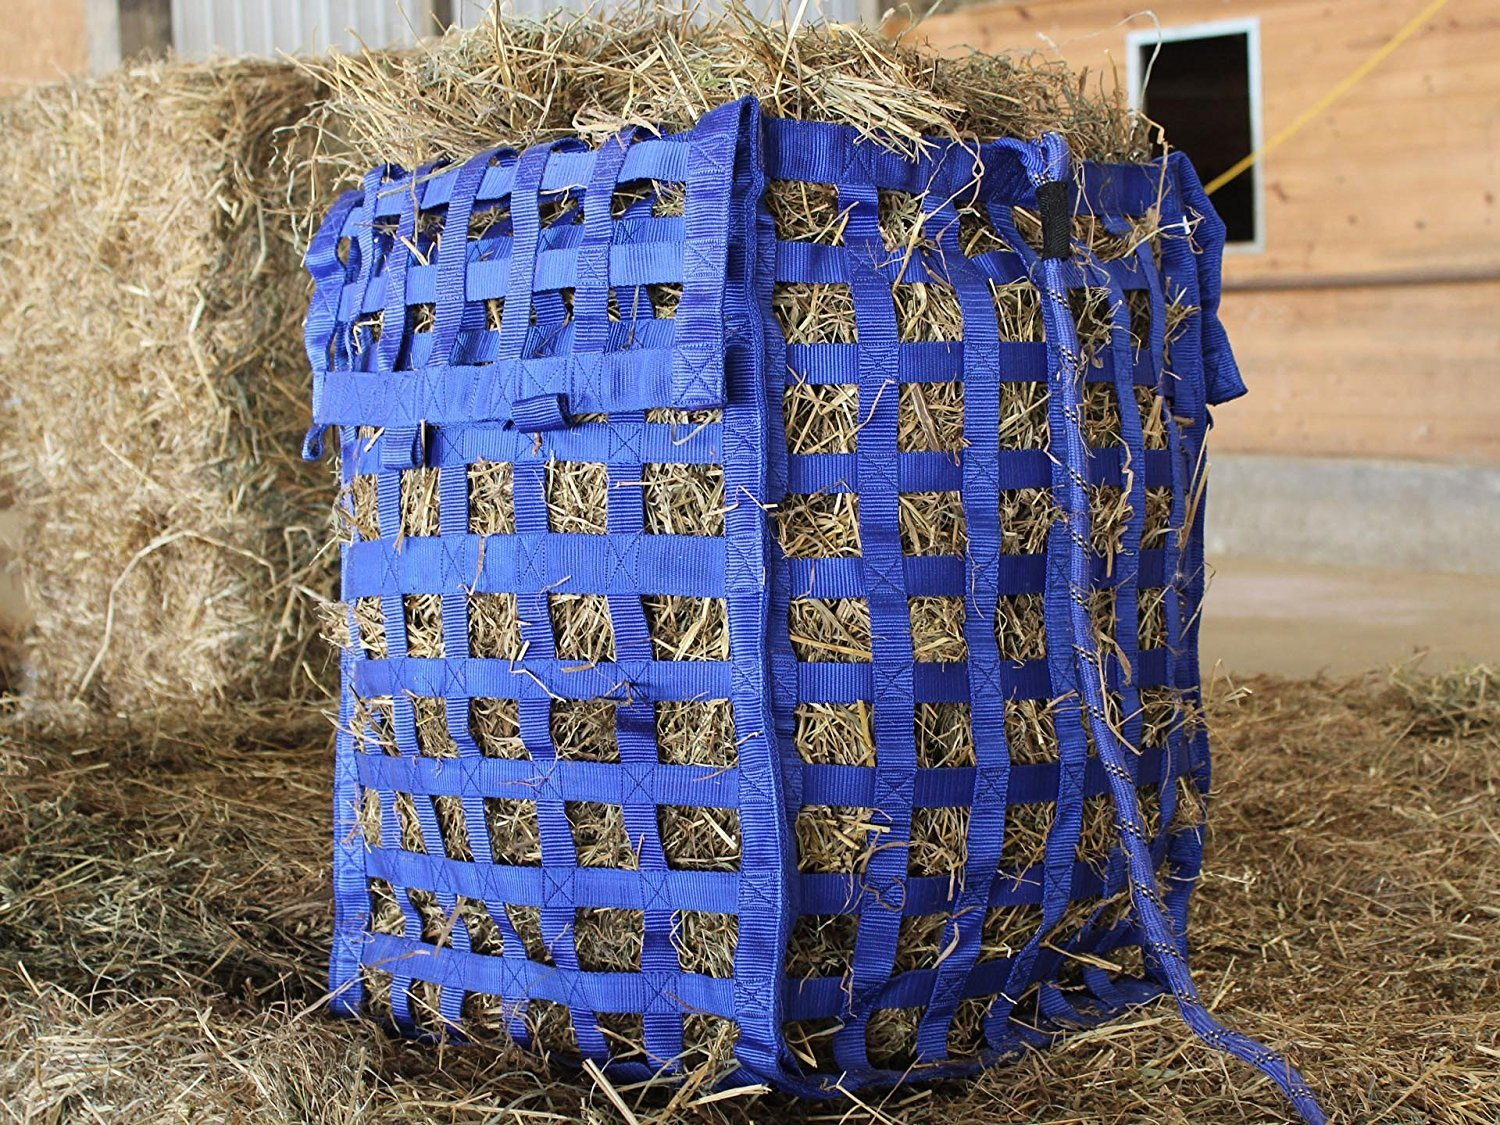 Derby Originals Natural Grazer Slow Feed Hay Bag Patented with Warranty, 18 x 19 x 26, Black 71-7133BK